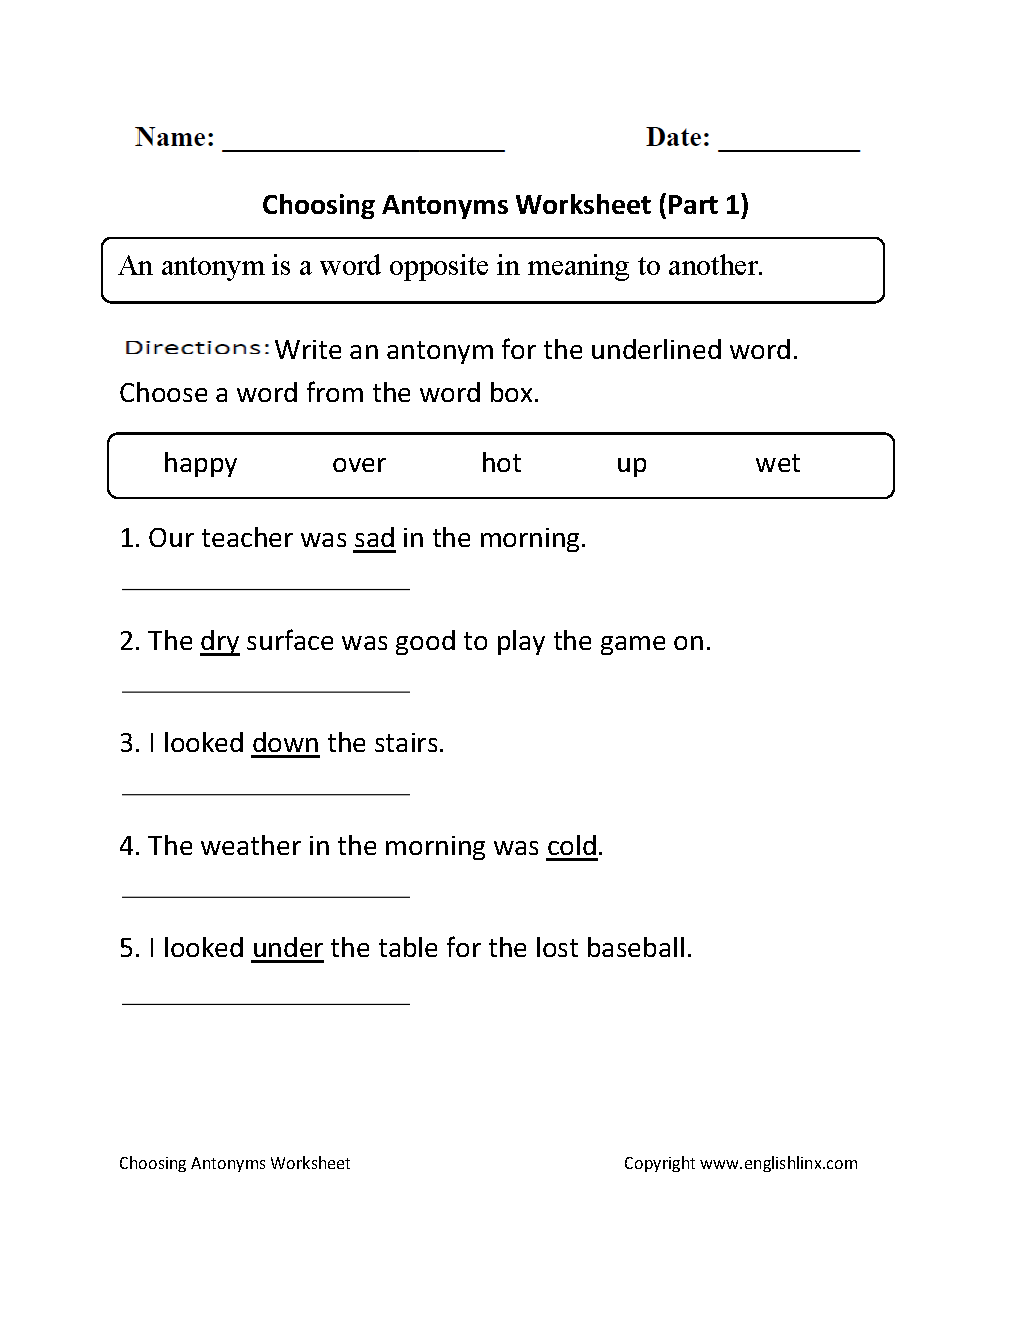 Choosing Antonyms Worksheet Part 1